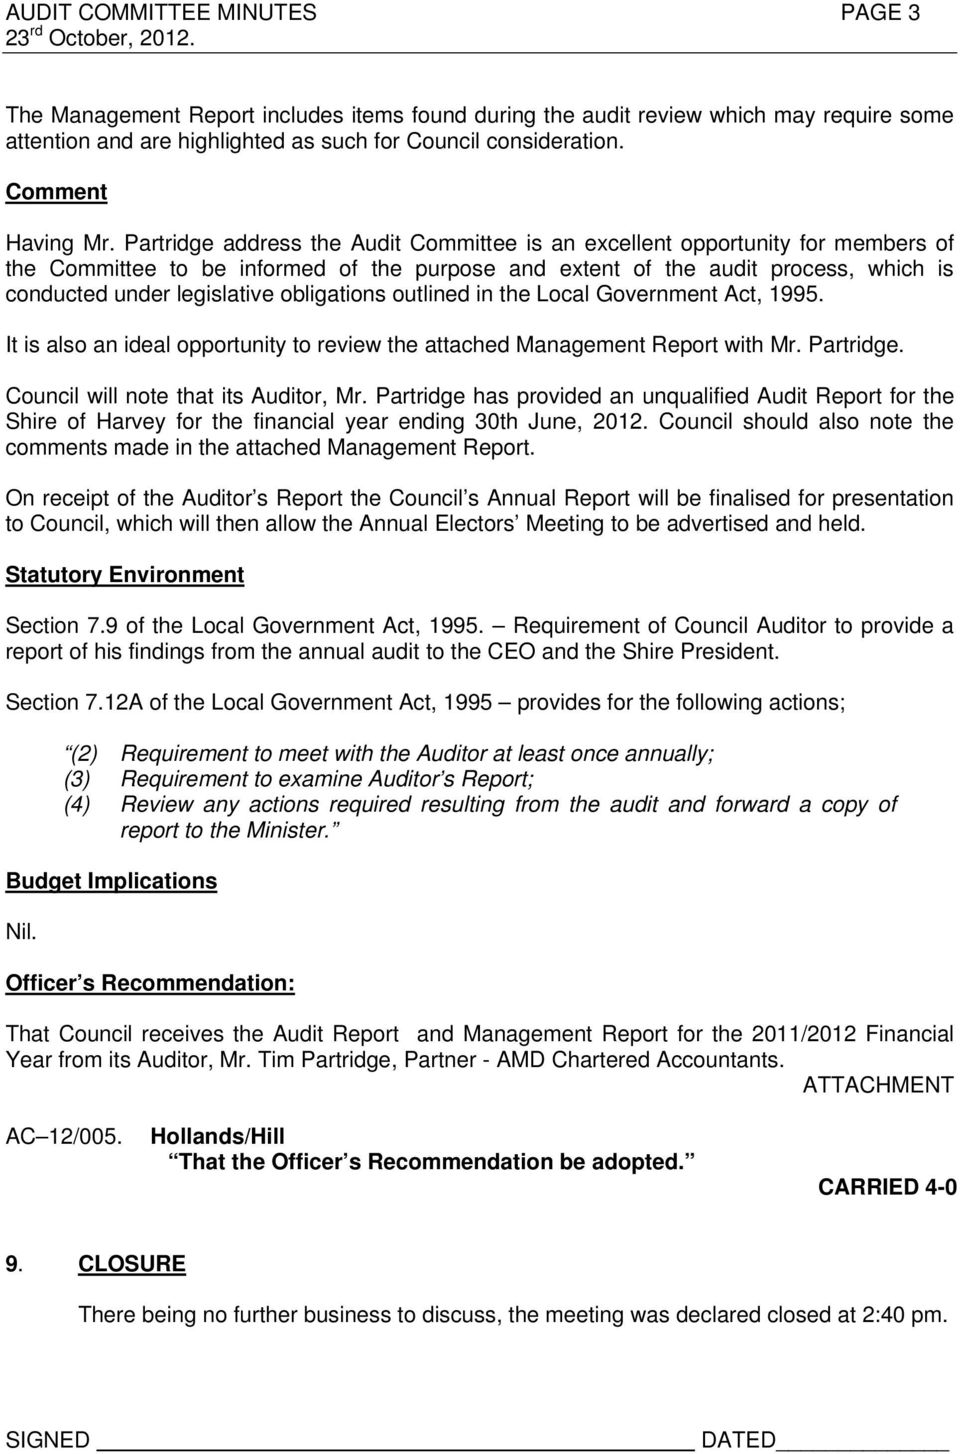 bc local government act pdf